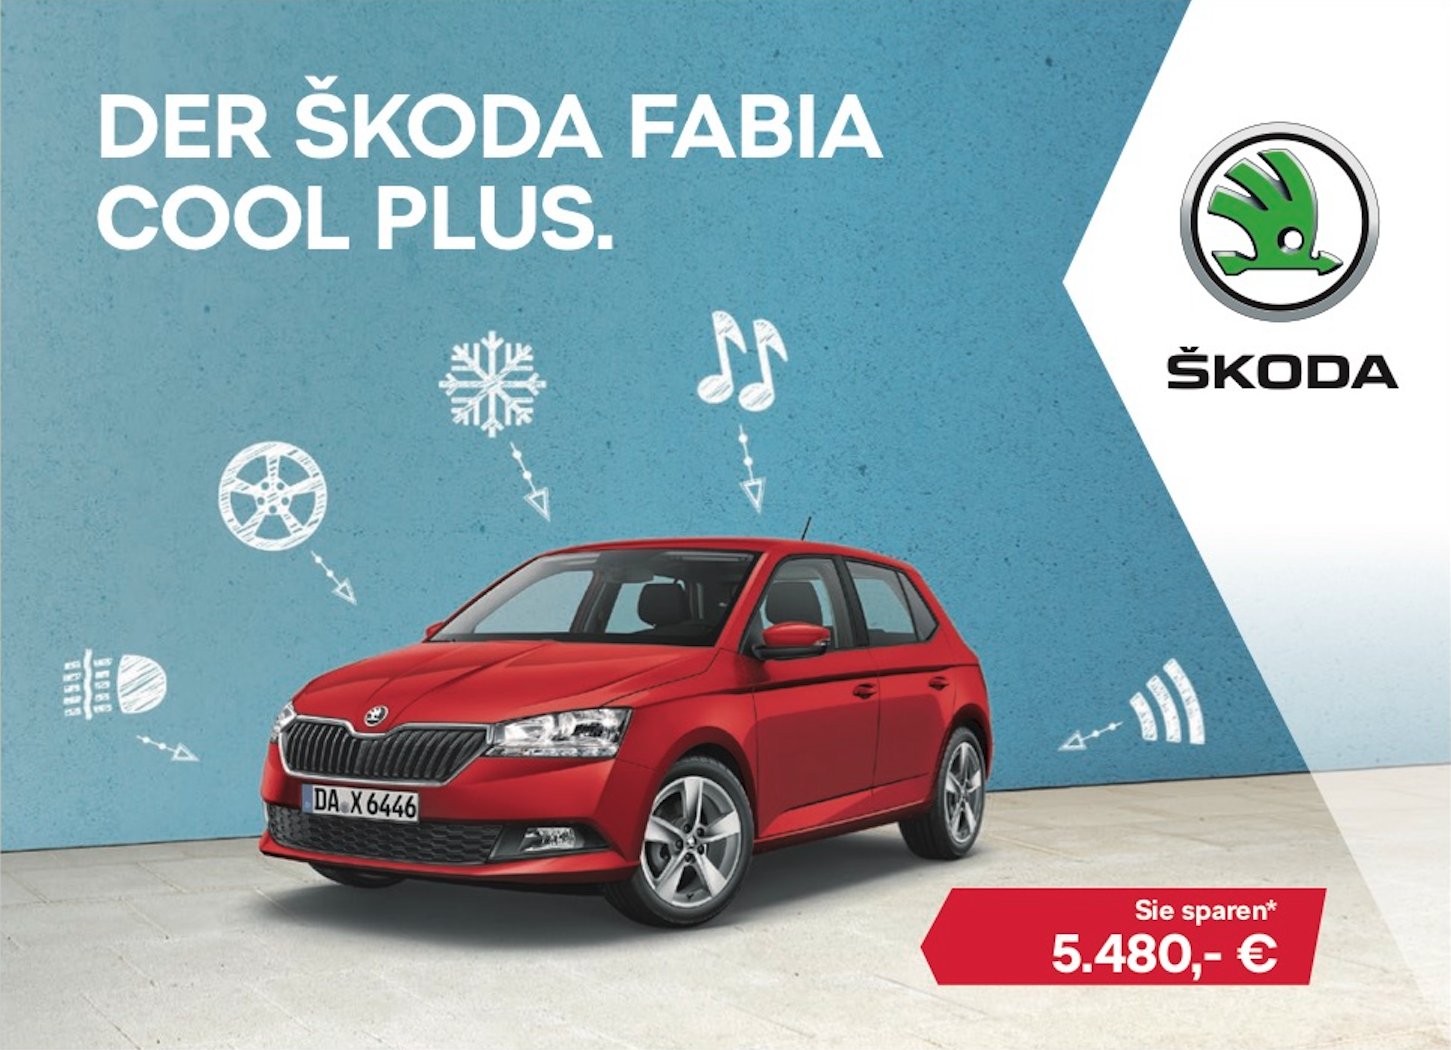 Der Skoda Fabia Cool Plus.